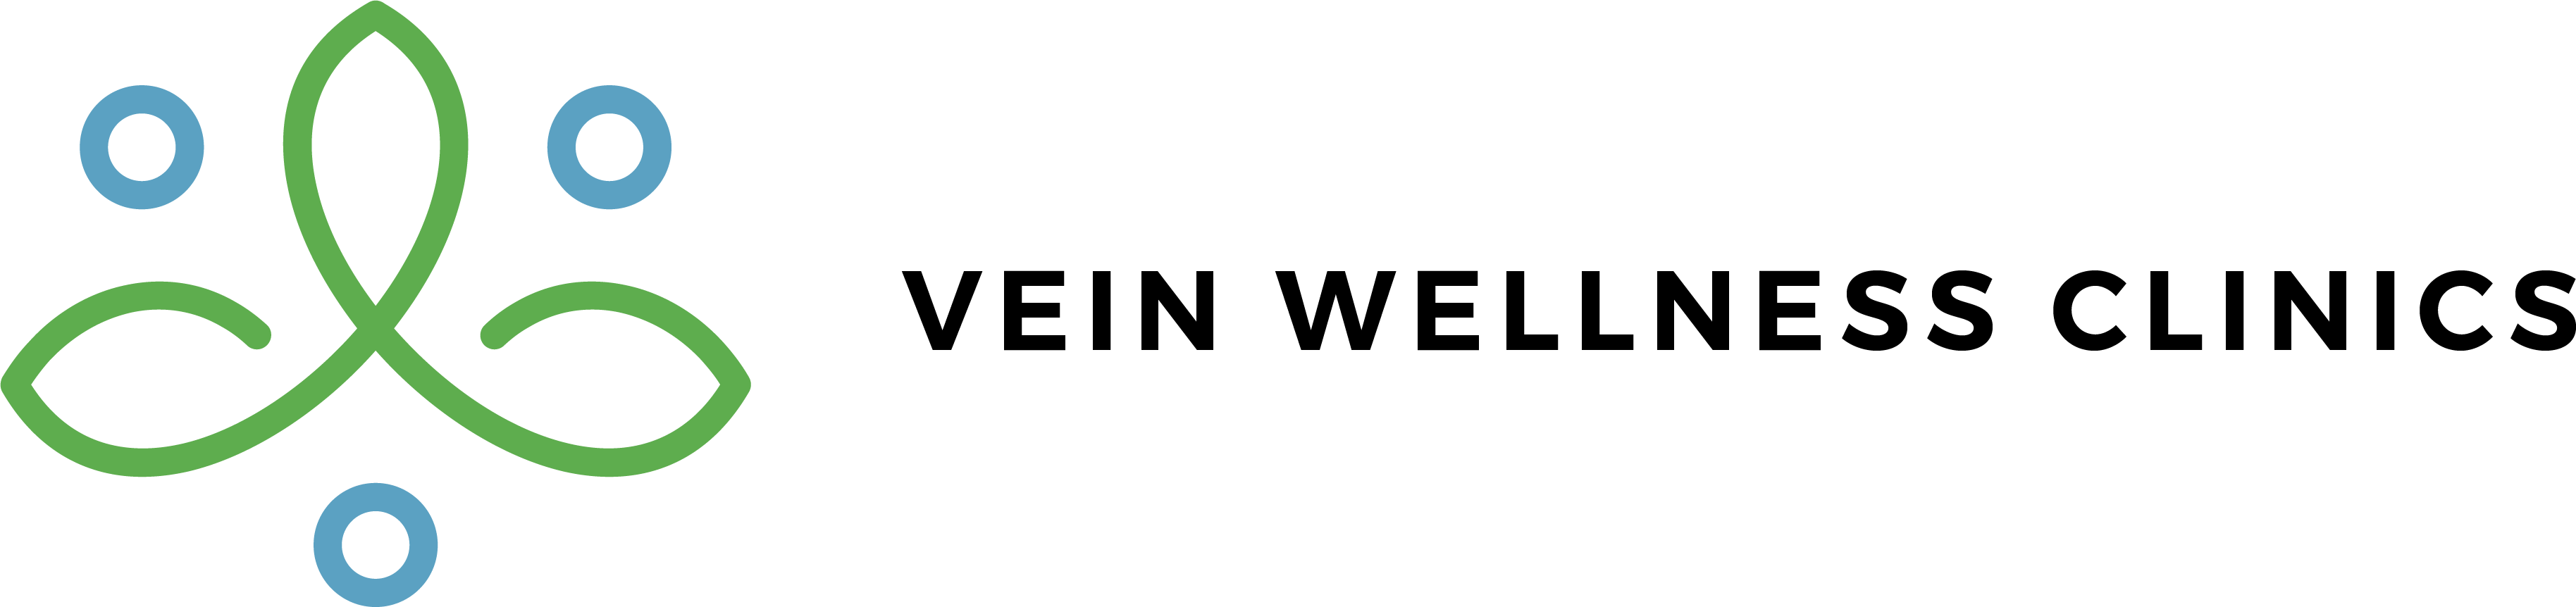 Vein Wellness Clinics